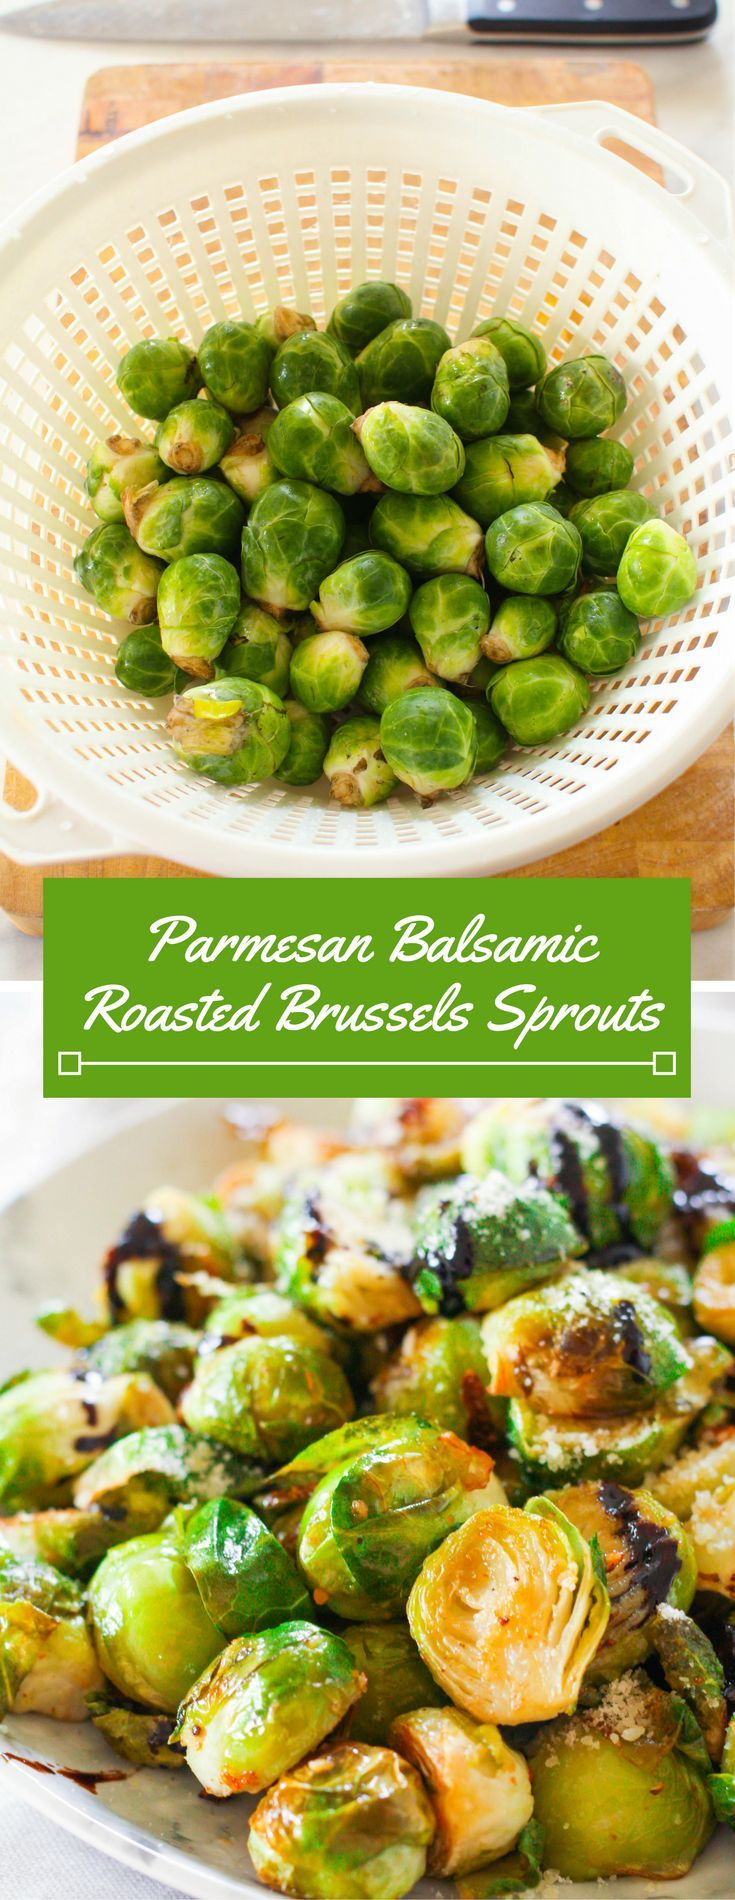 Parmesan Balsamic Roasted Brussels Sprouts. #recipe #recipes #recipeoftheday #recipeoftheweek #healthy #healthyrecipes #healthyfood #healthyliving